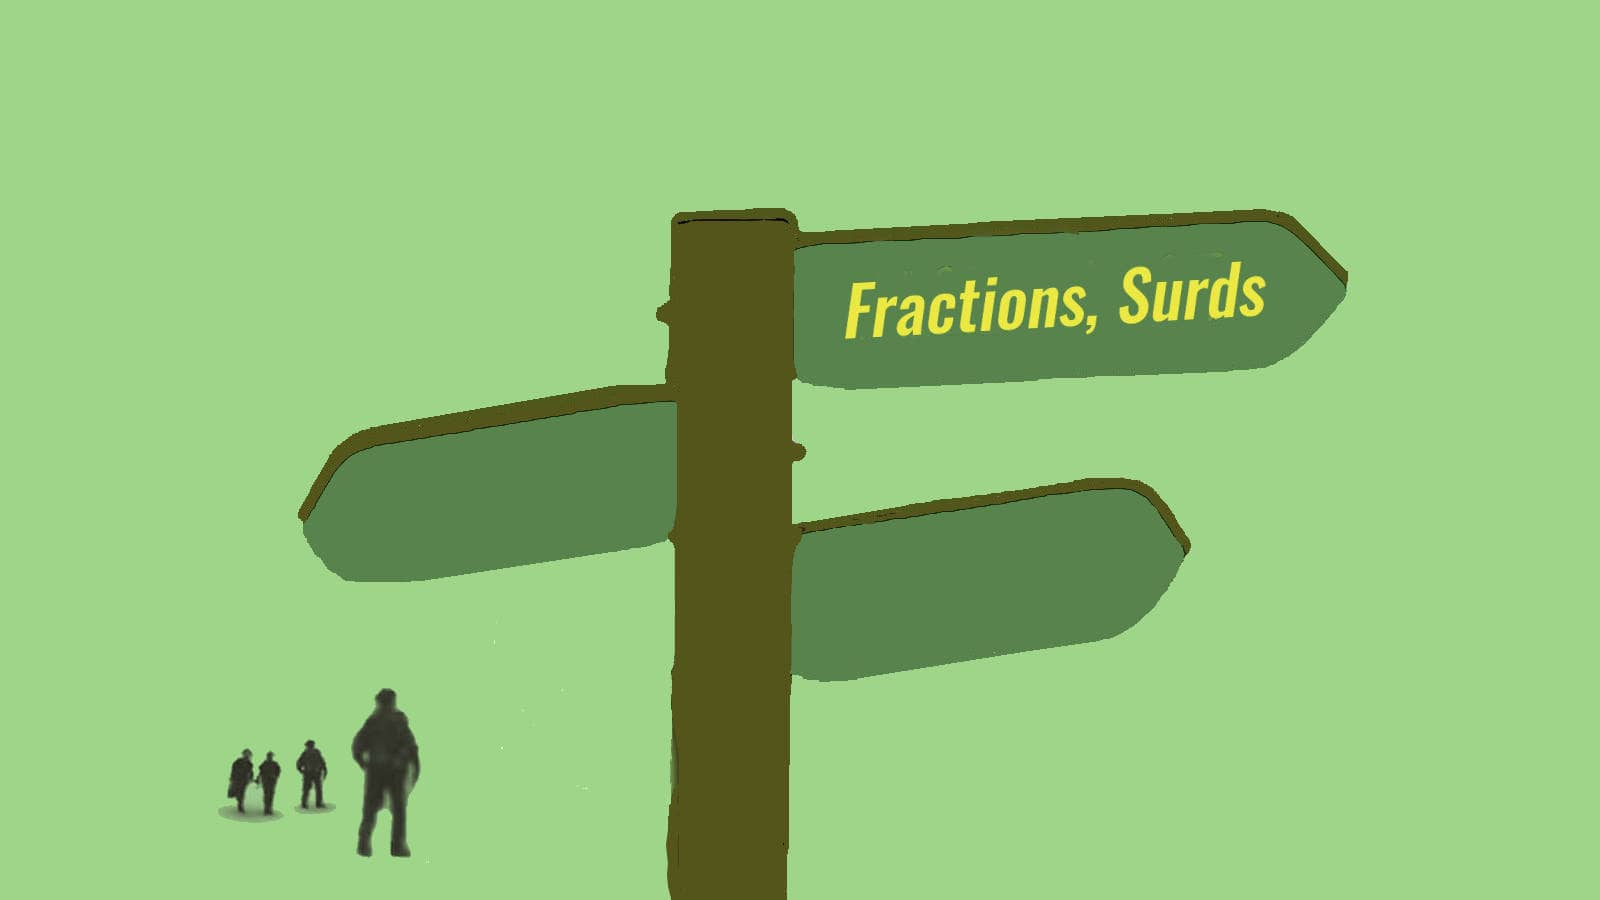 suresolv fractions surds indices reading guide